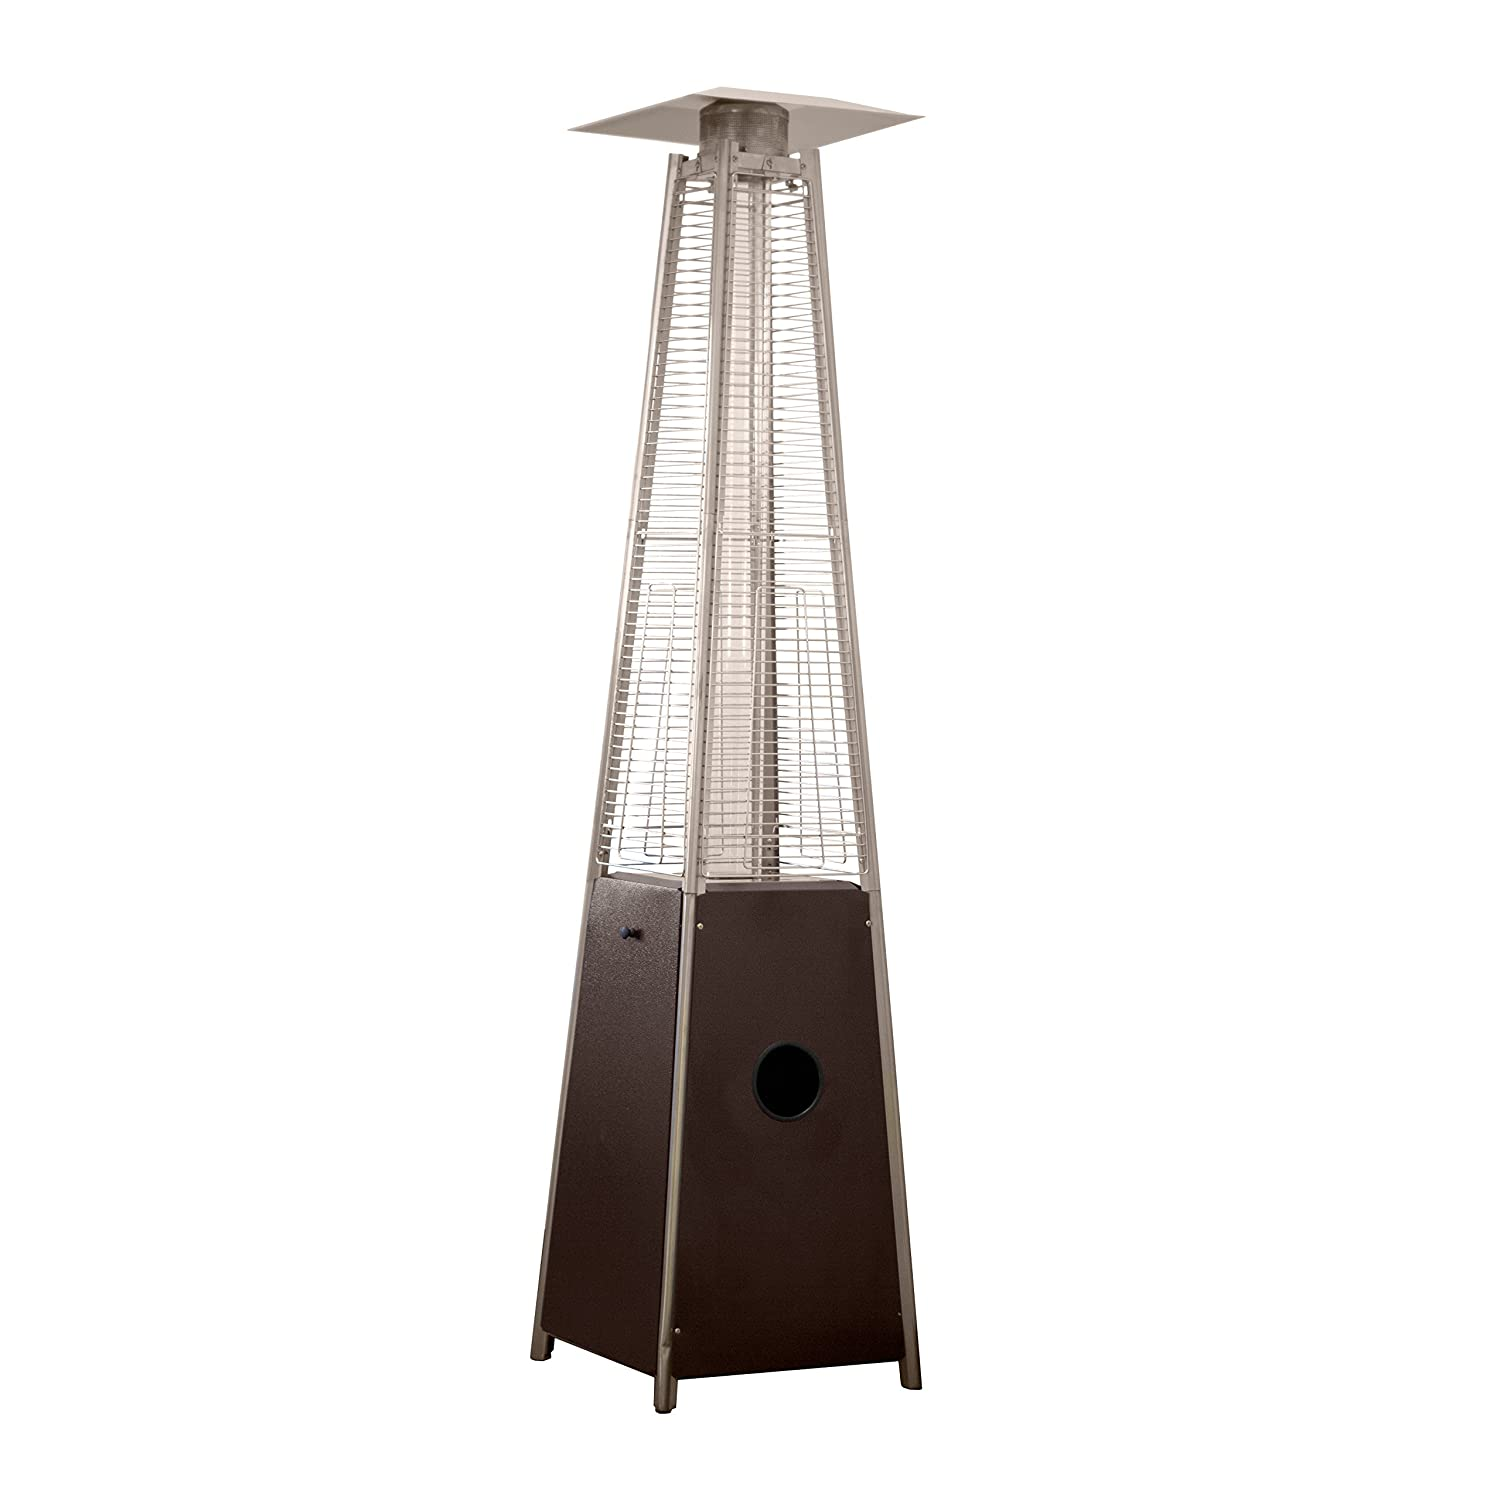 Hiland HLDSO1-WGTHG Pyramid Patio Propane Heater w Wheels, 87 Inches, Hammered Bronze